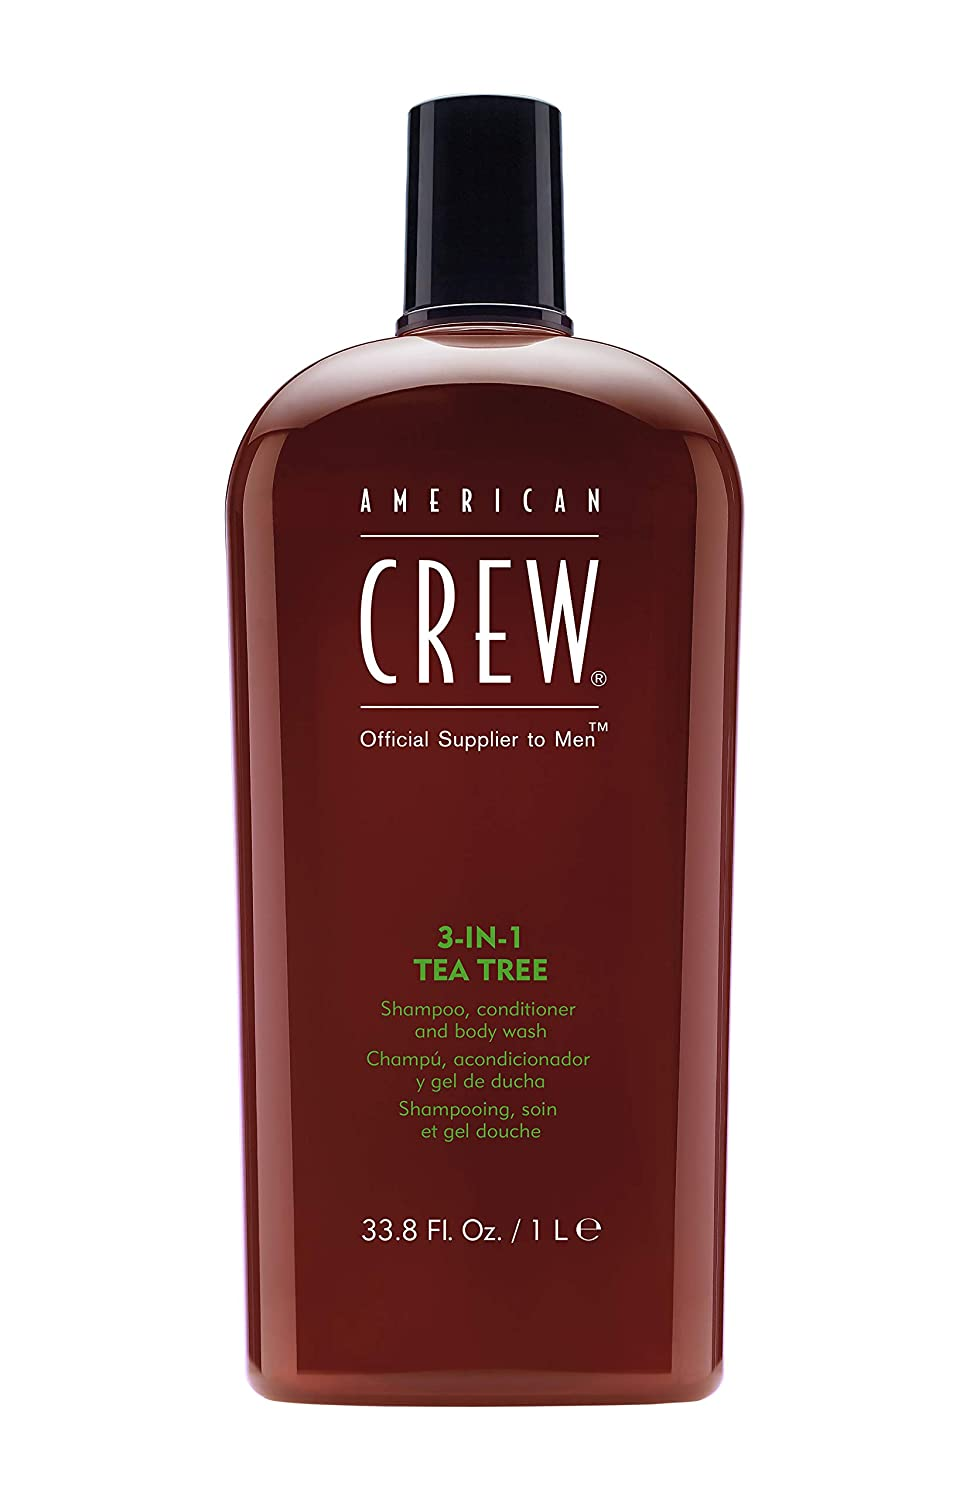 american crew 3 in 1 tea tree shampoo, conditioner, body wash, 33.8 fluid ounces; best shampoos for men